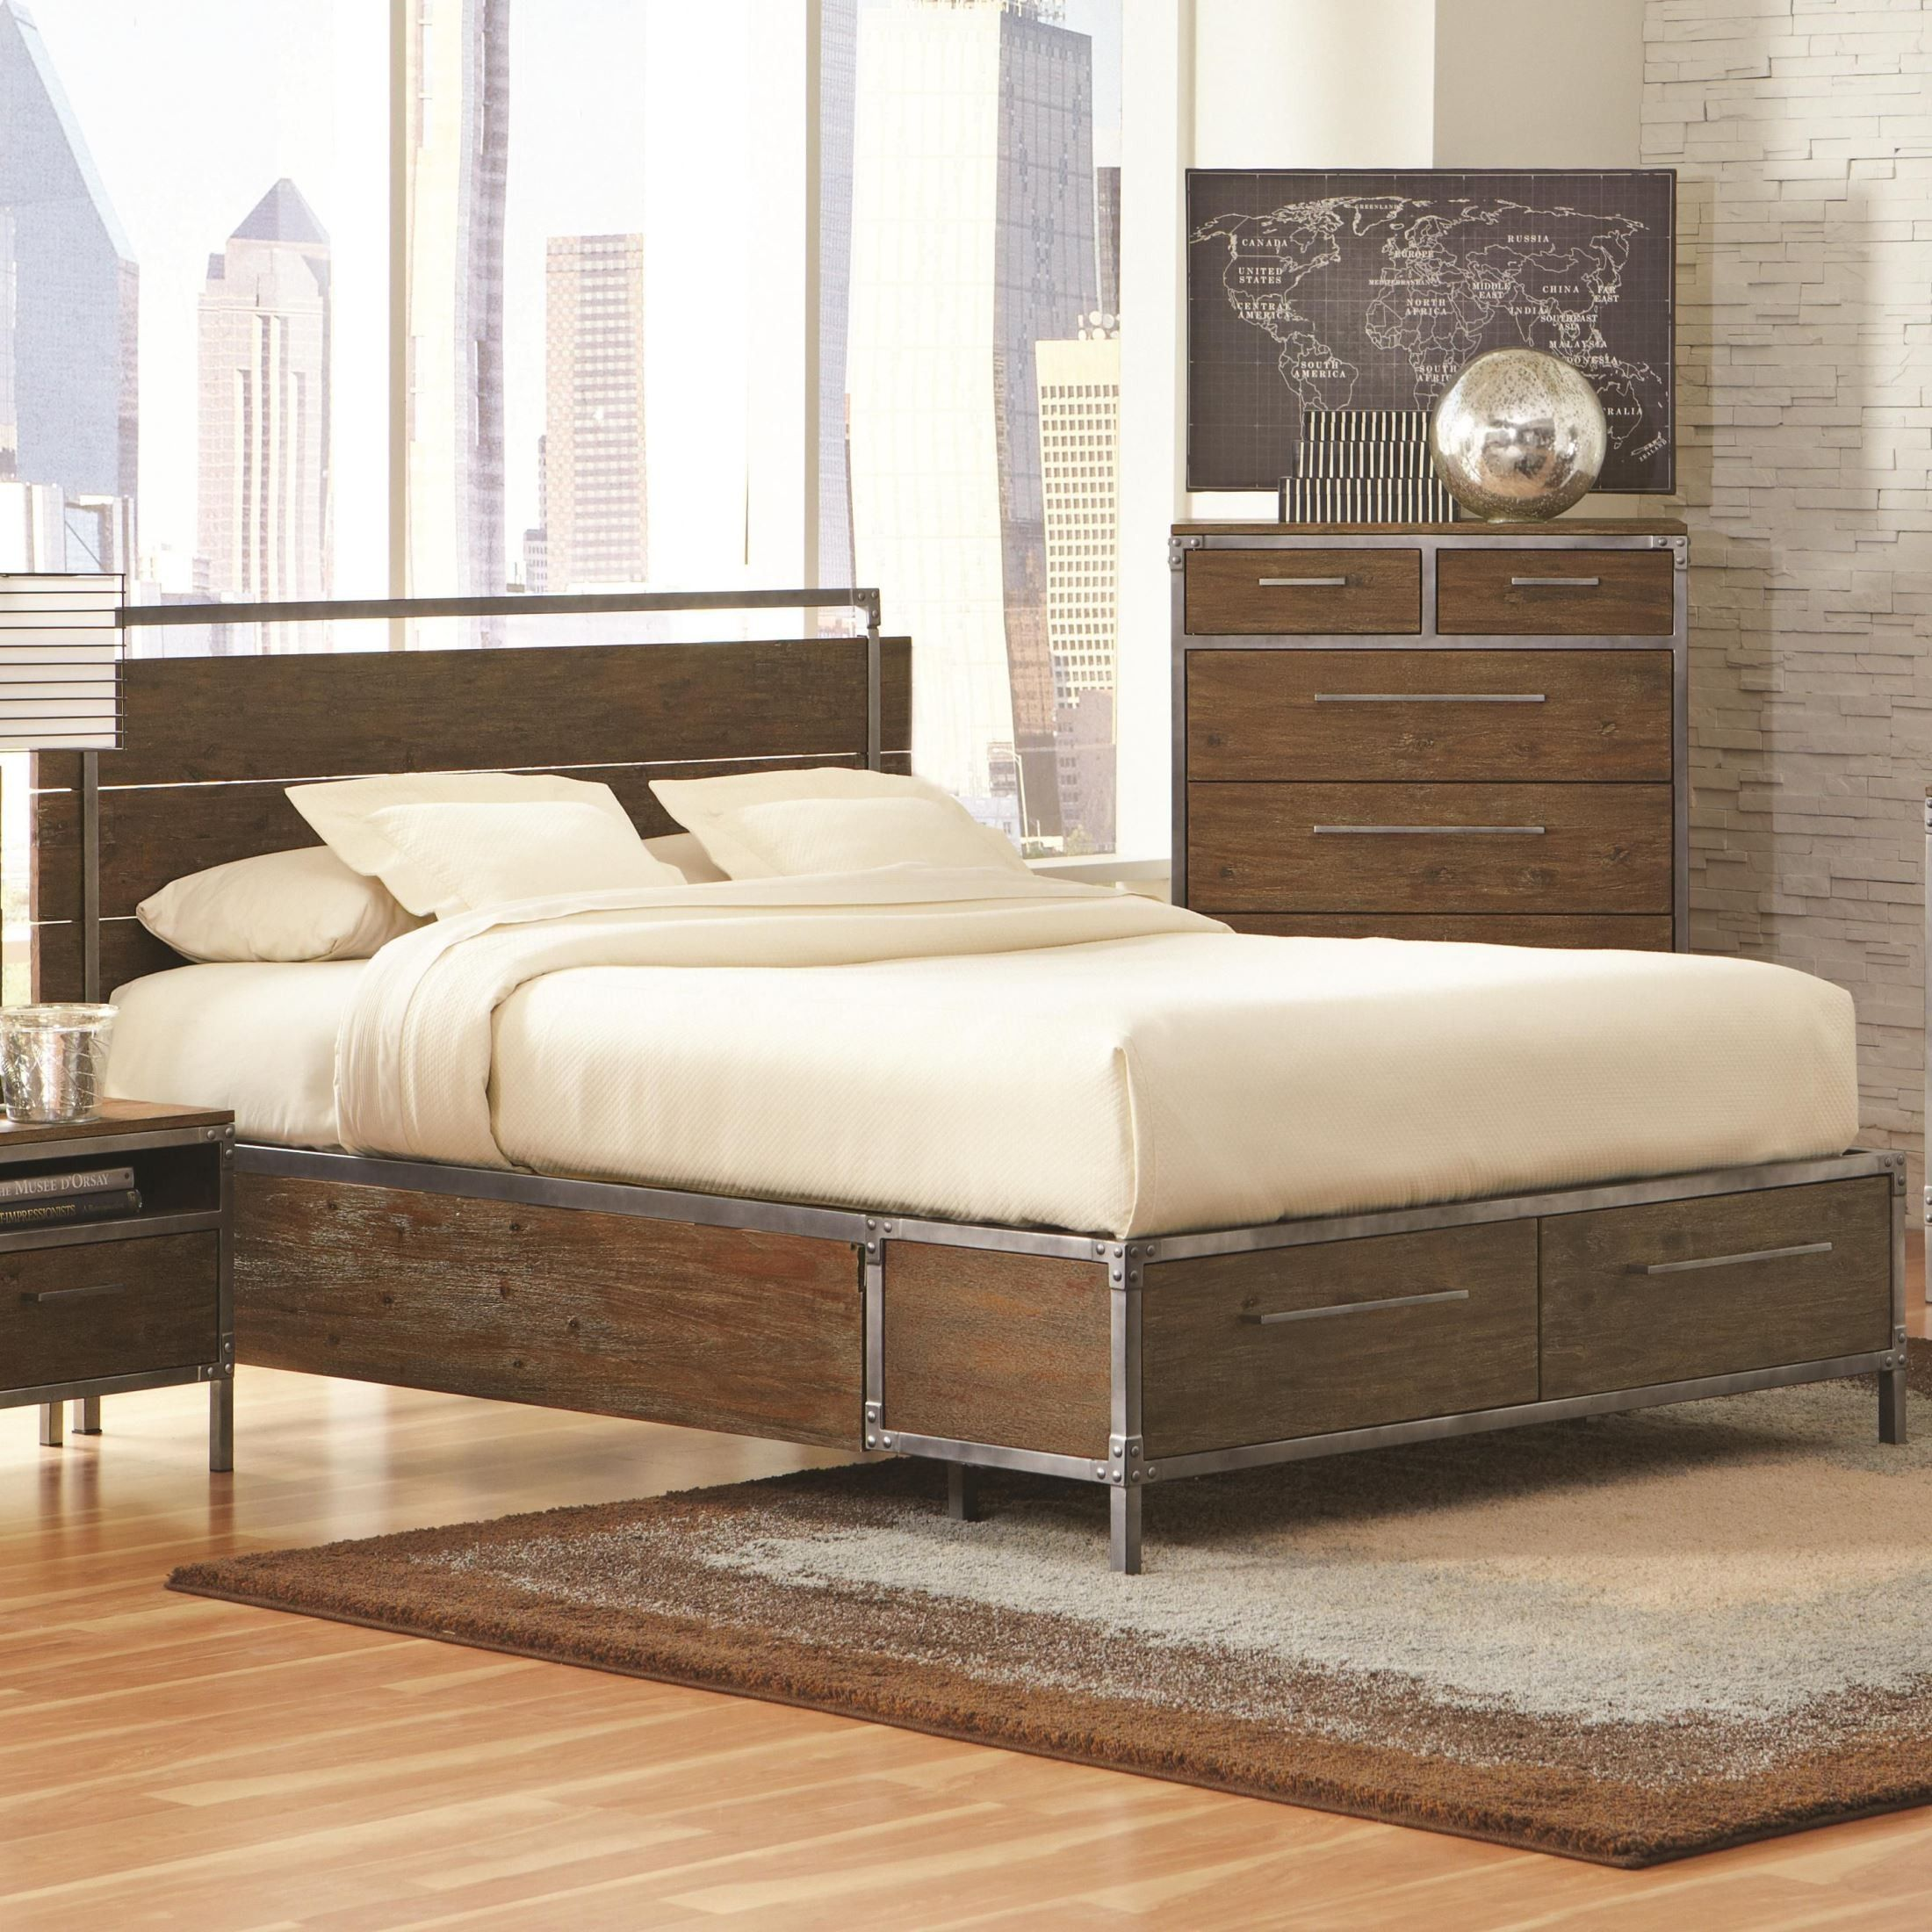 Uncategorized Industrial Bed this edgy industrial bed will be a great focal point for your artsy urban loft